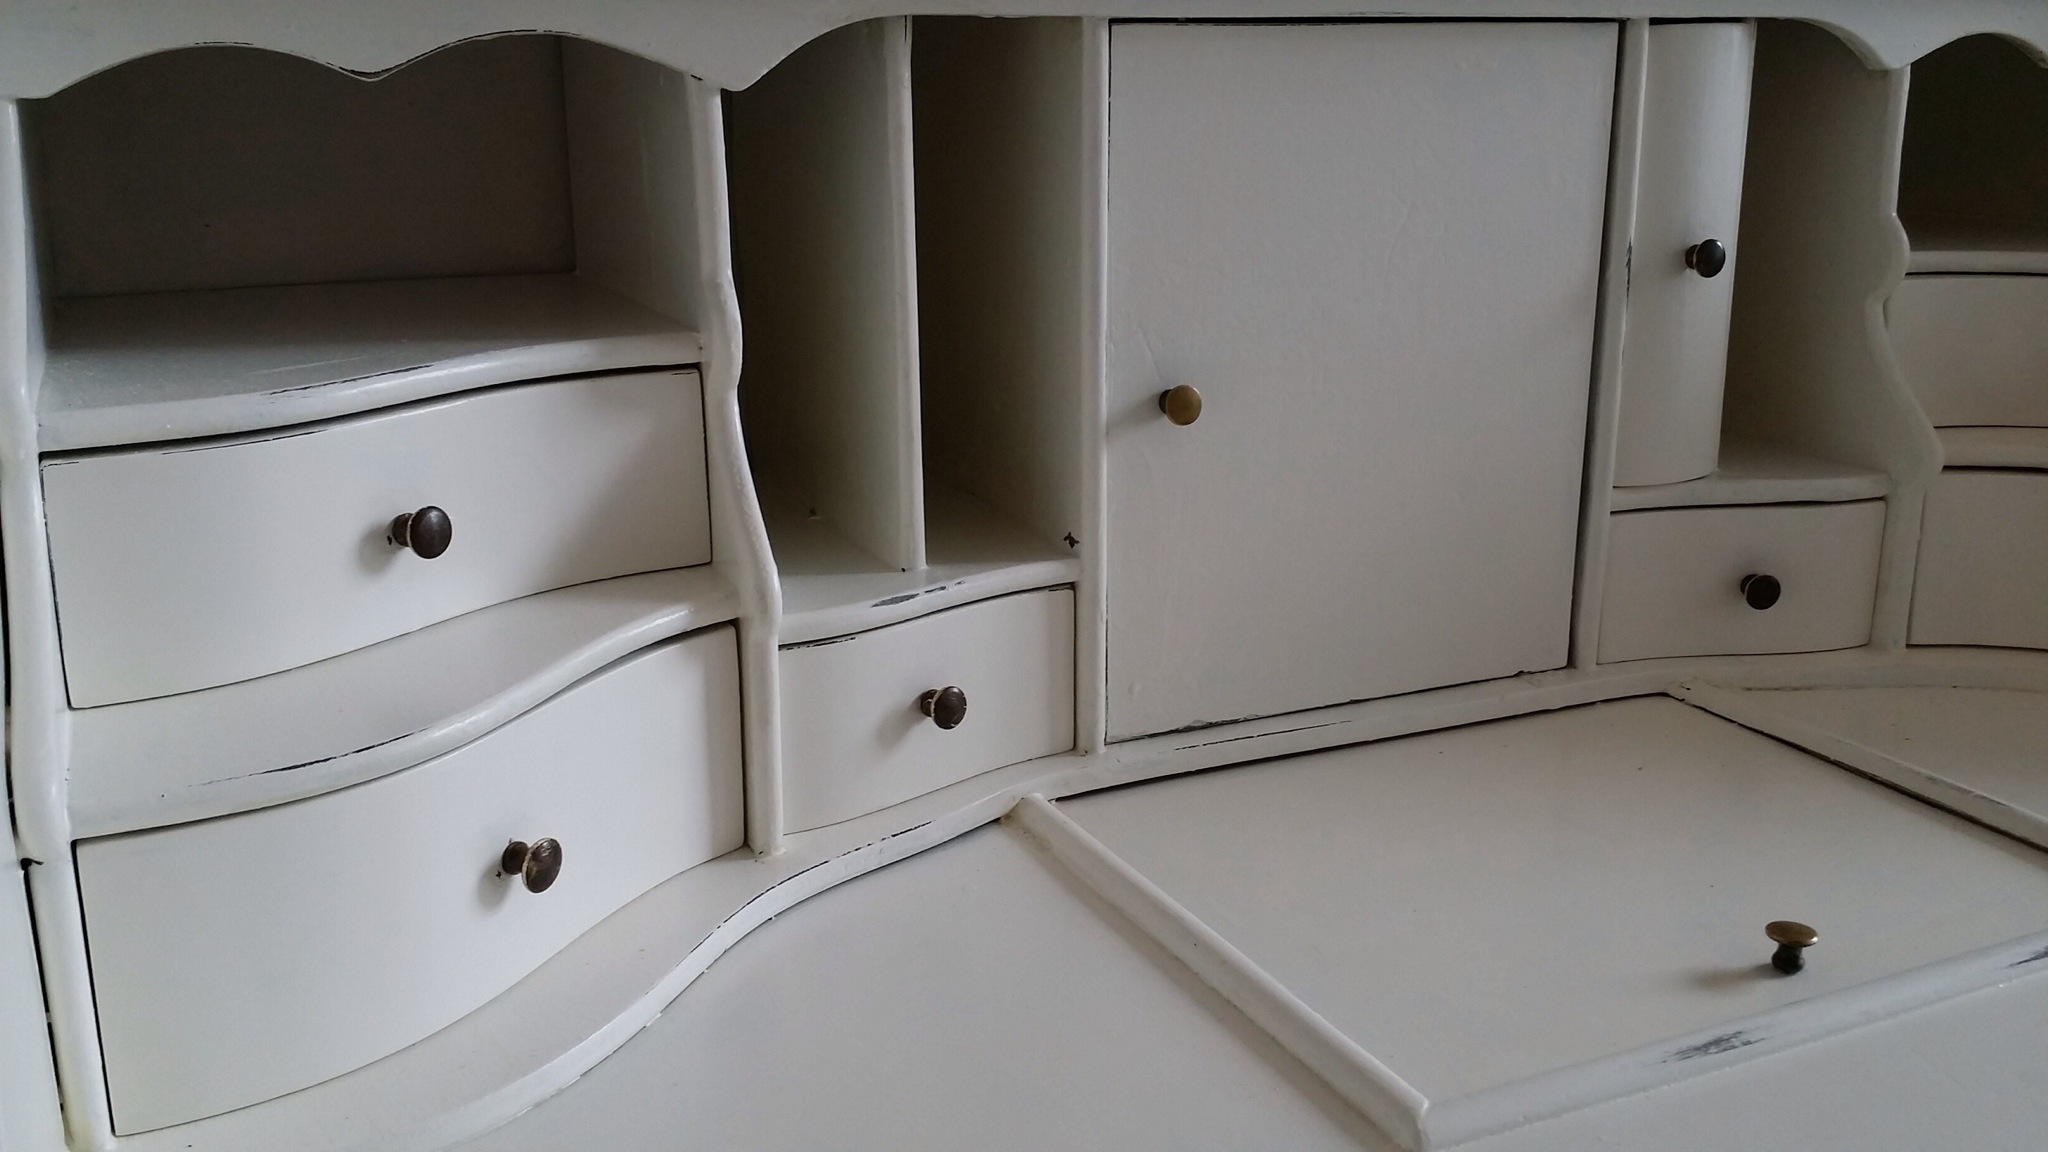 Tanya's 101 ~ Refurbishing - A Fairytale Desk | How to refurbish a secretary desk and make it your dream desk